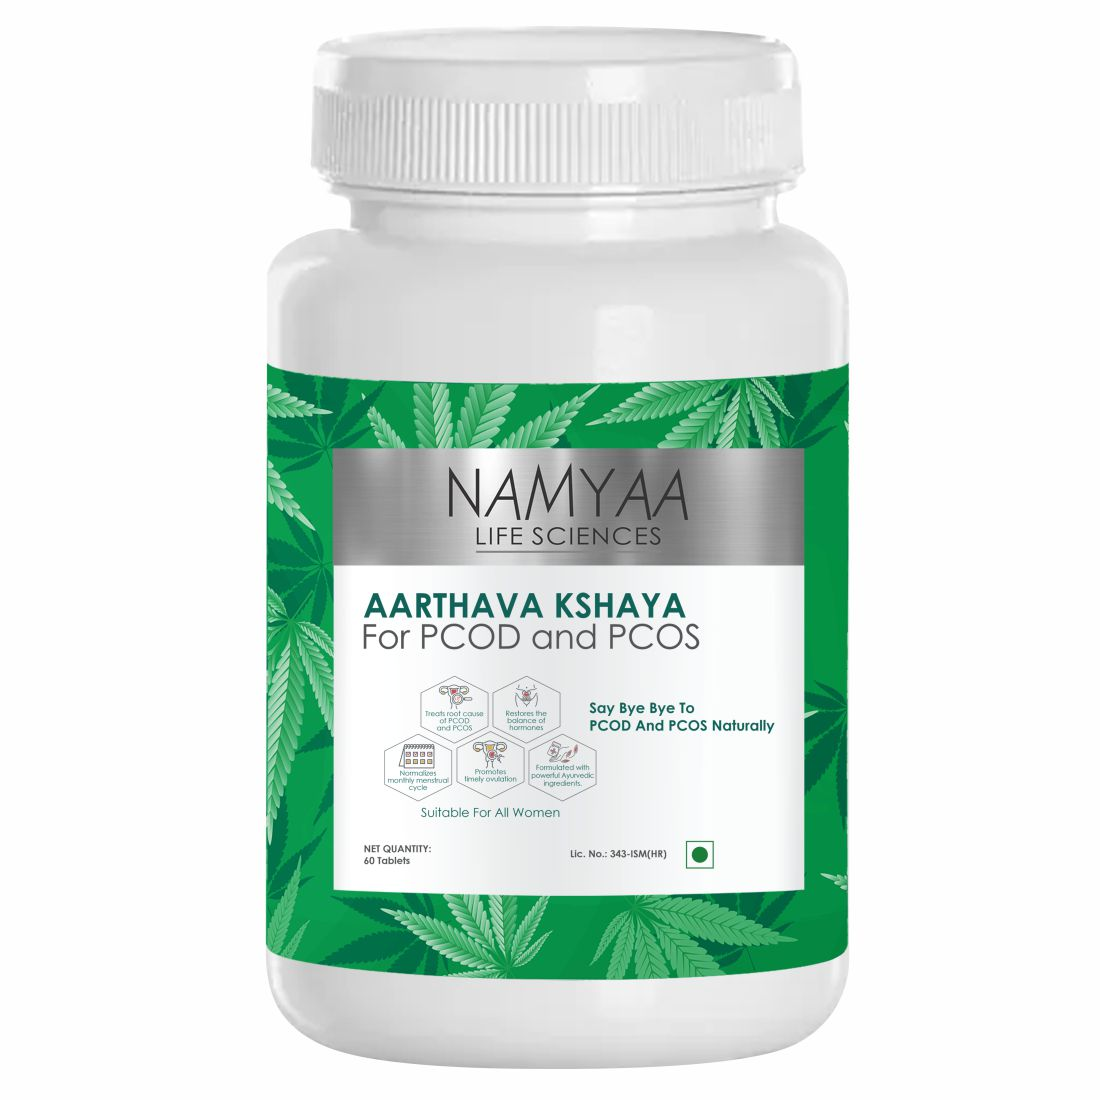 Aarthava Kshaya PCOD and PCOS Tablets